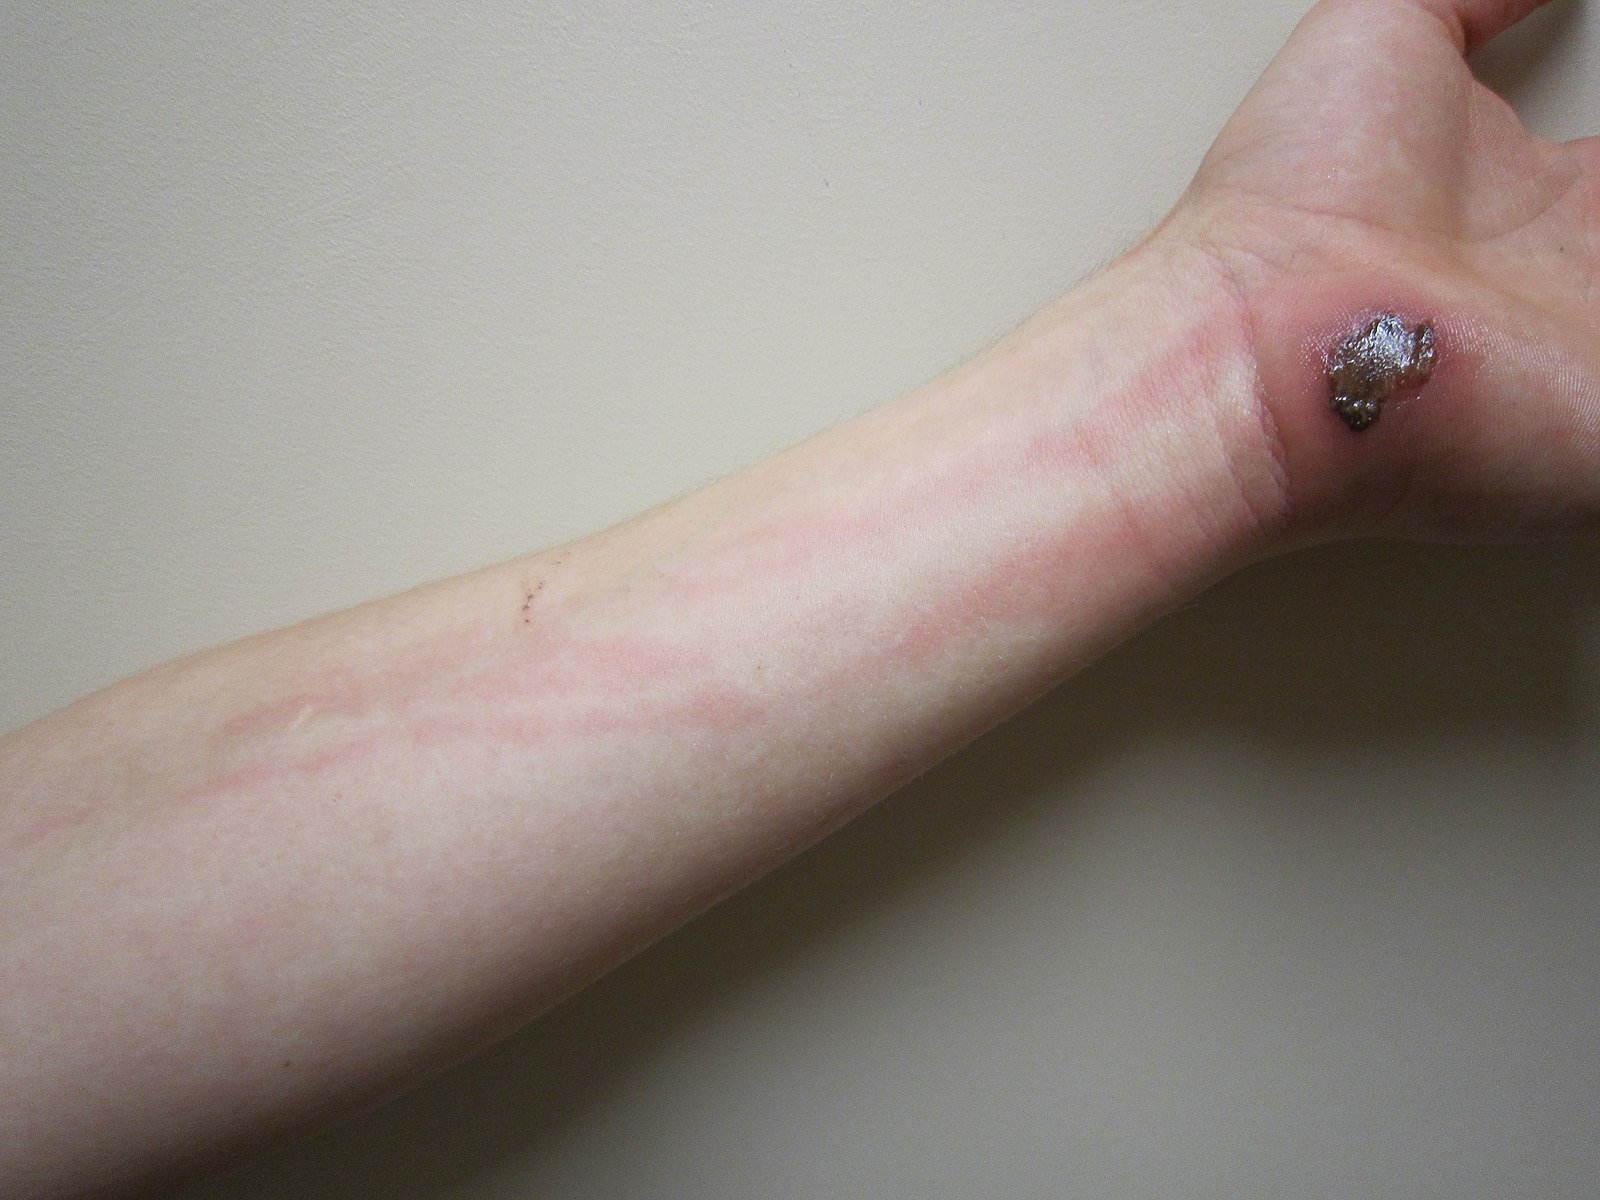 Infected Blister: How to Tell If It's Infected, Treatment